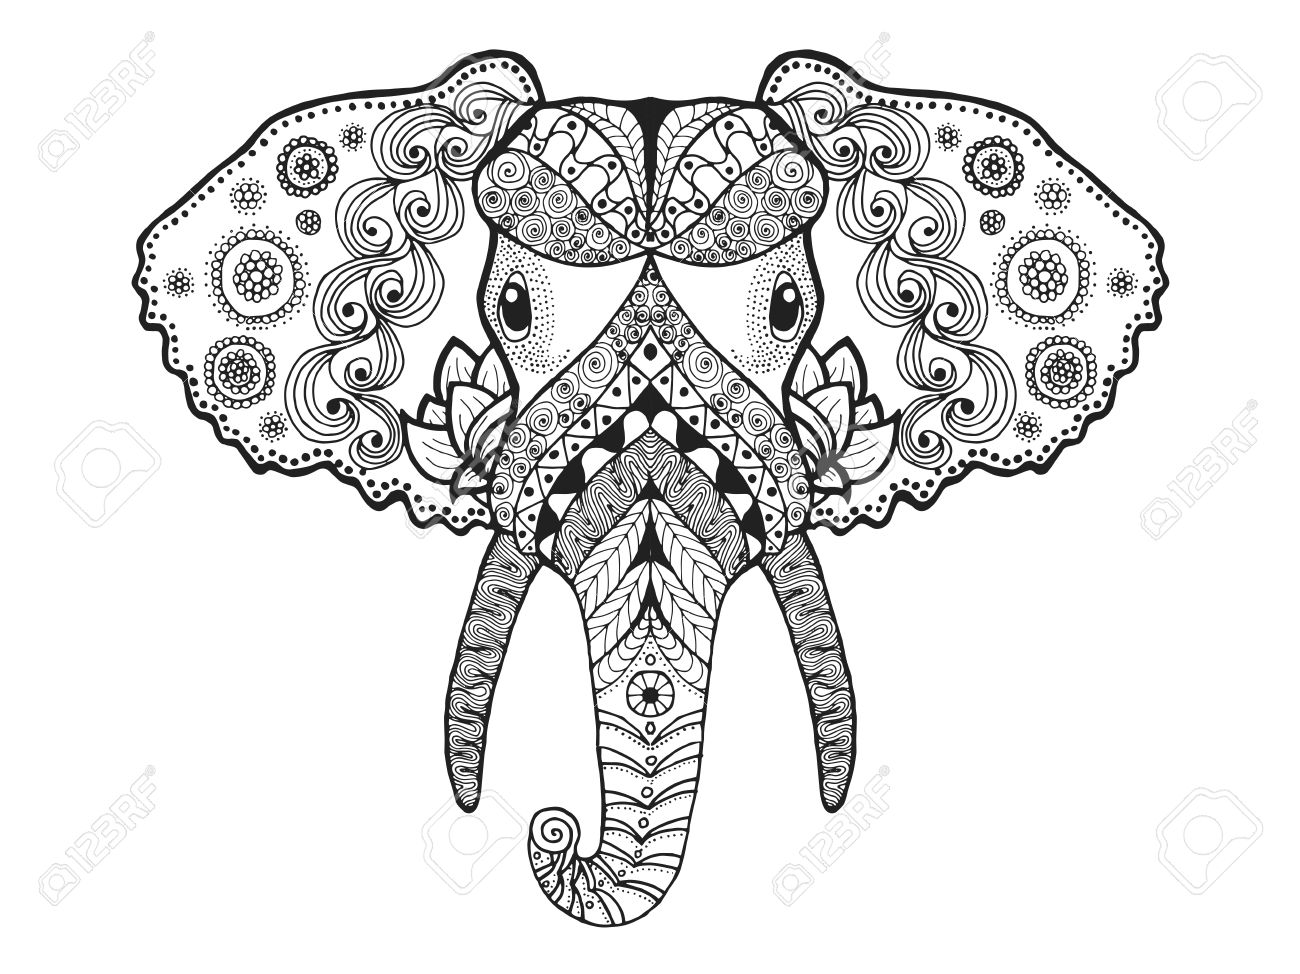 New Idea 44886250 additionally 22 Beautiful Tribal Dragon Tattoo further Sheep Templates Printable besides Puzzle Infographic Template Free together with Identifying Your Face Shape. on head design